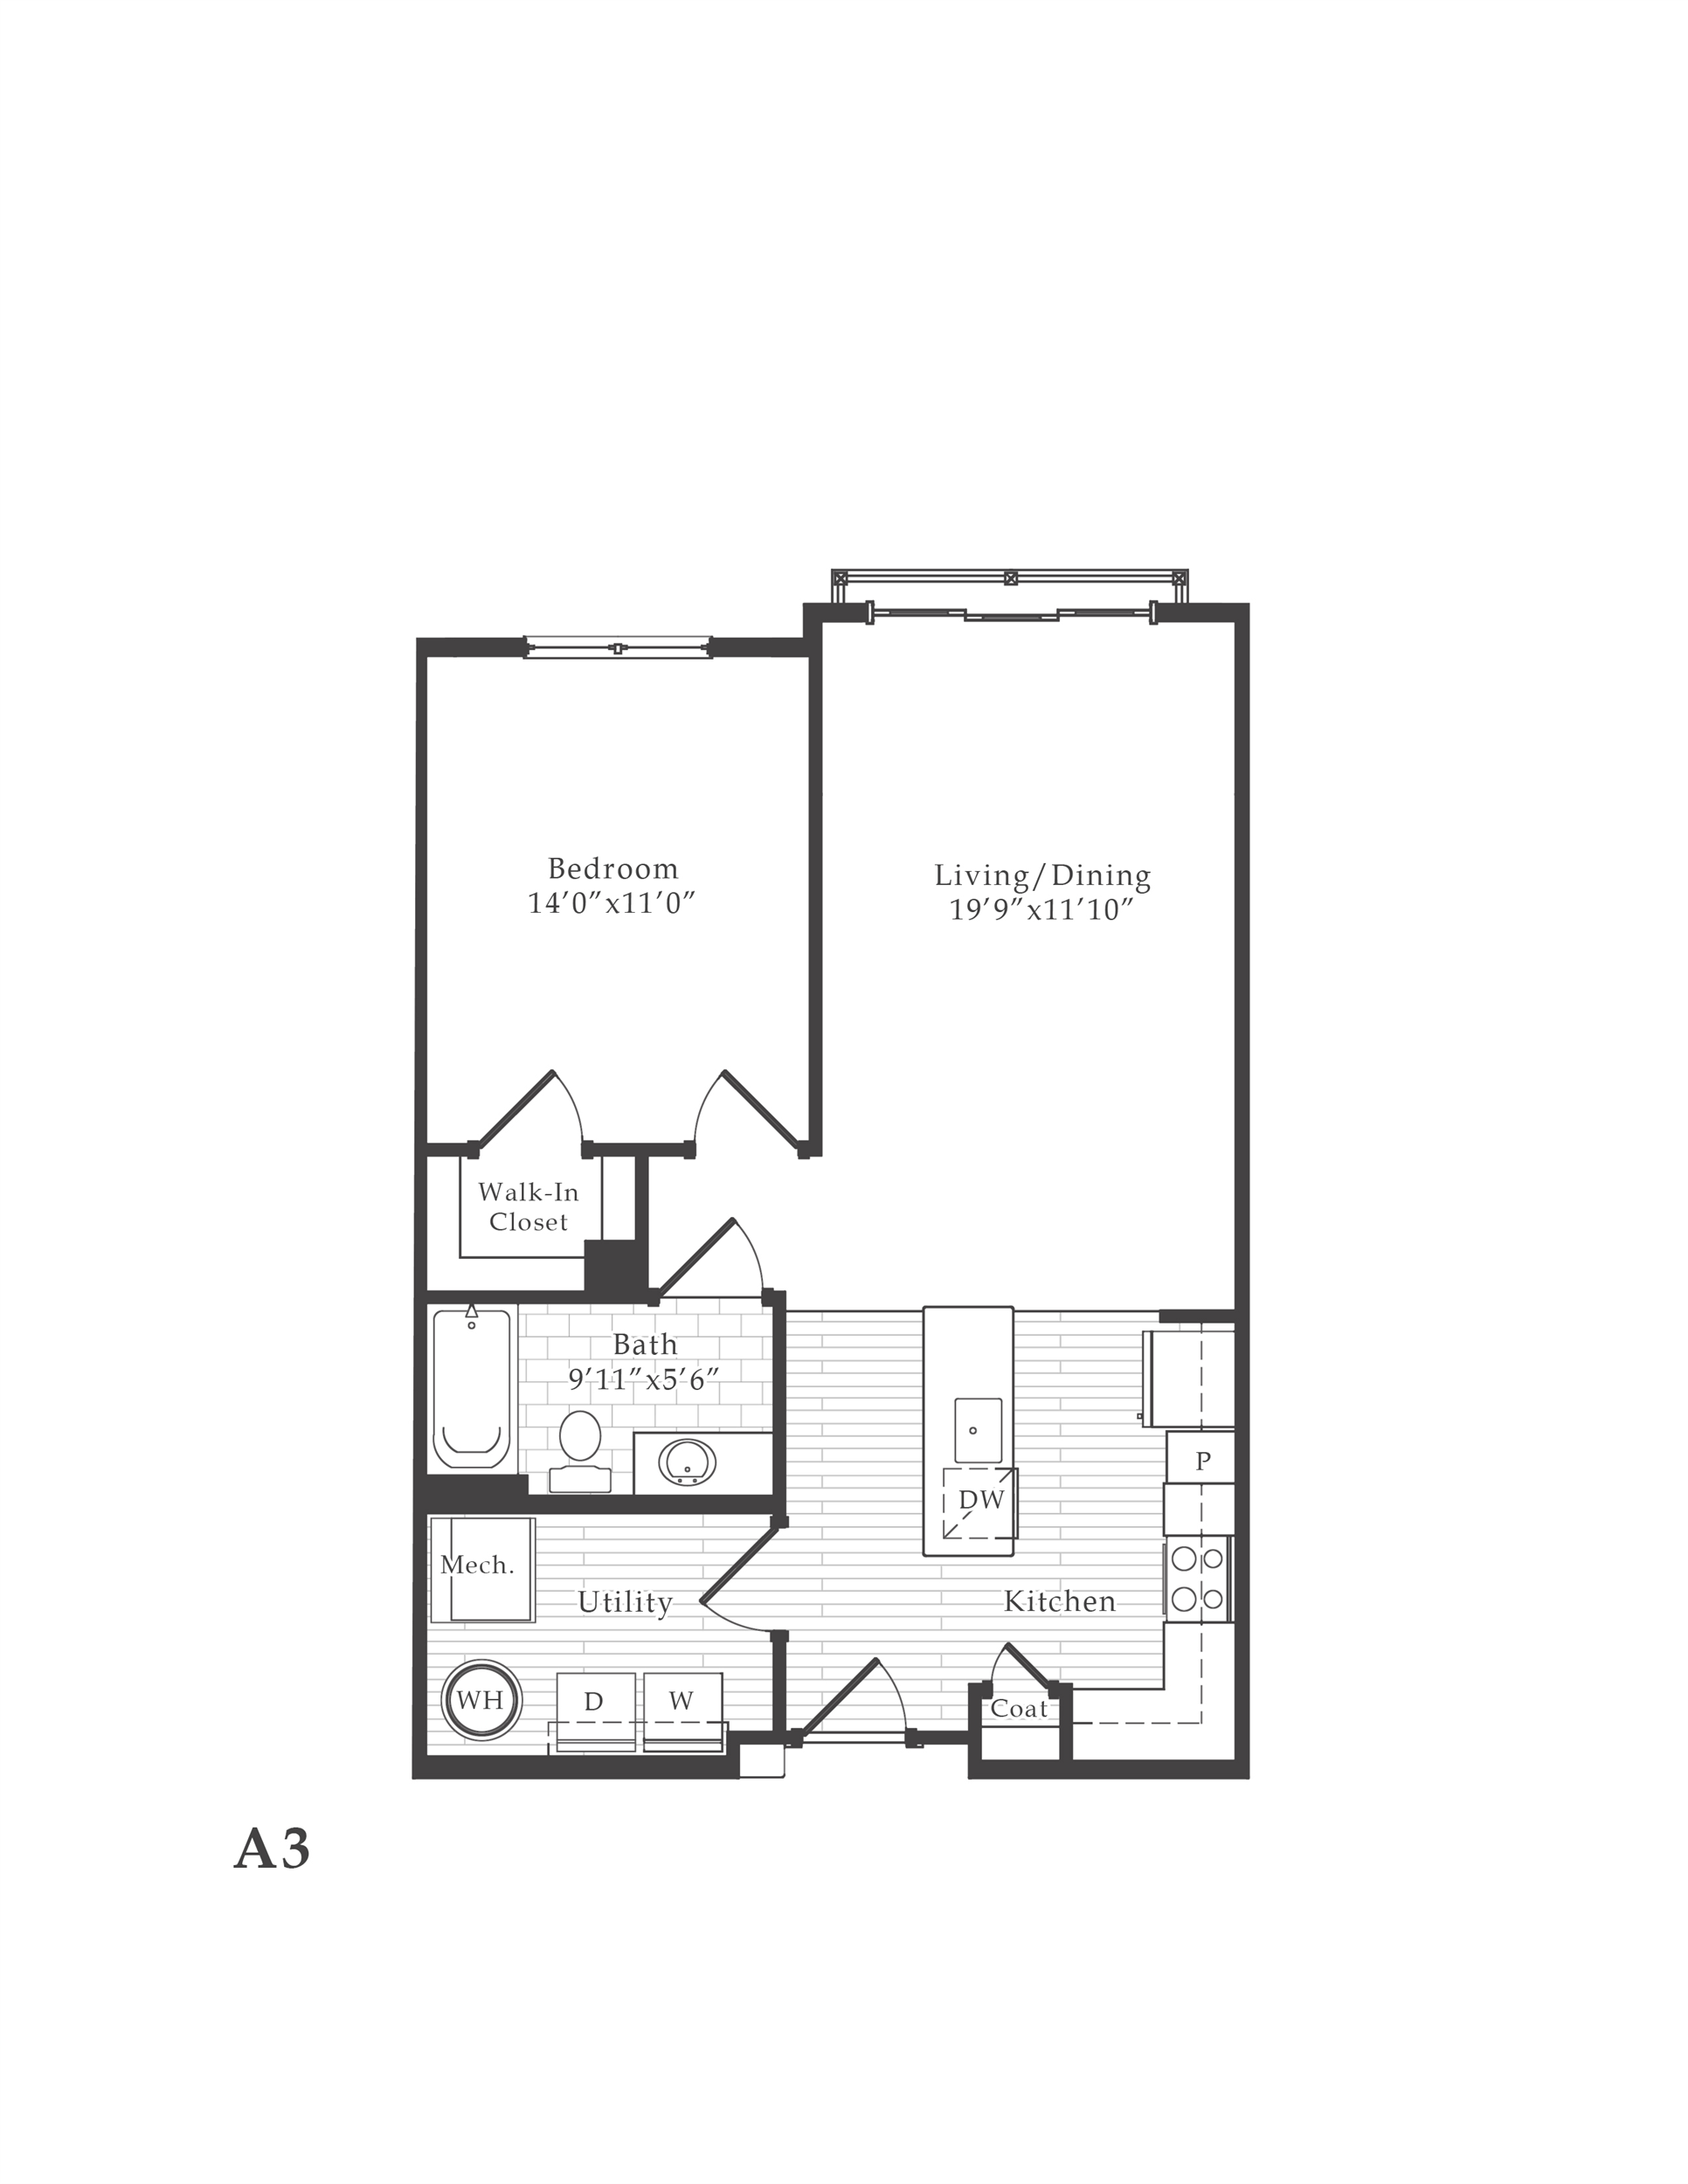 816aa02 md laurel thevine p0637686 vinea3795 2 floorplan